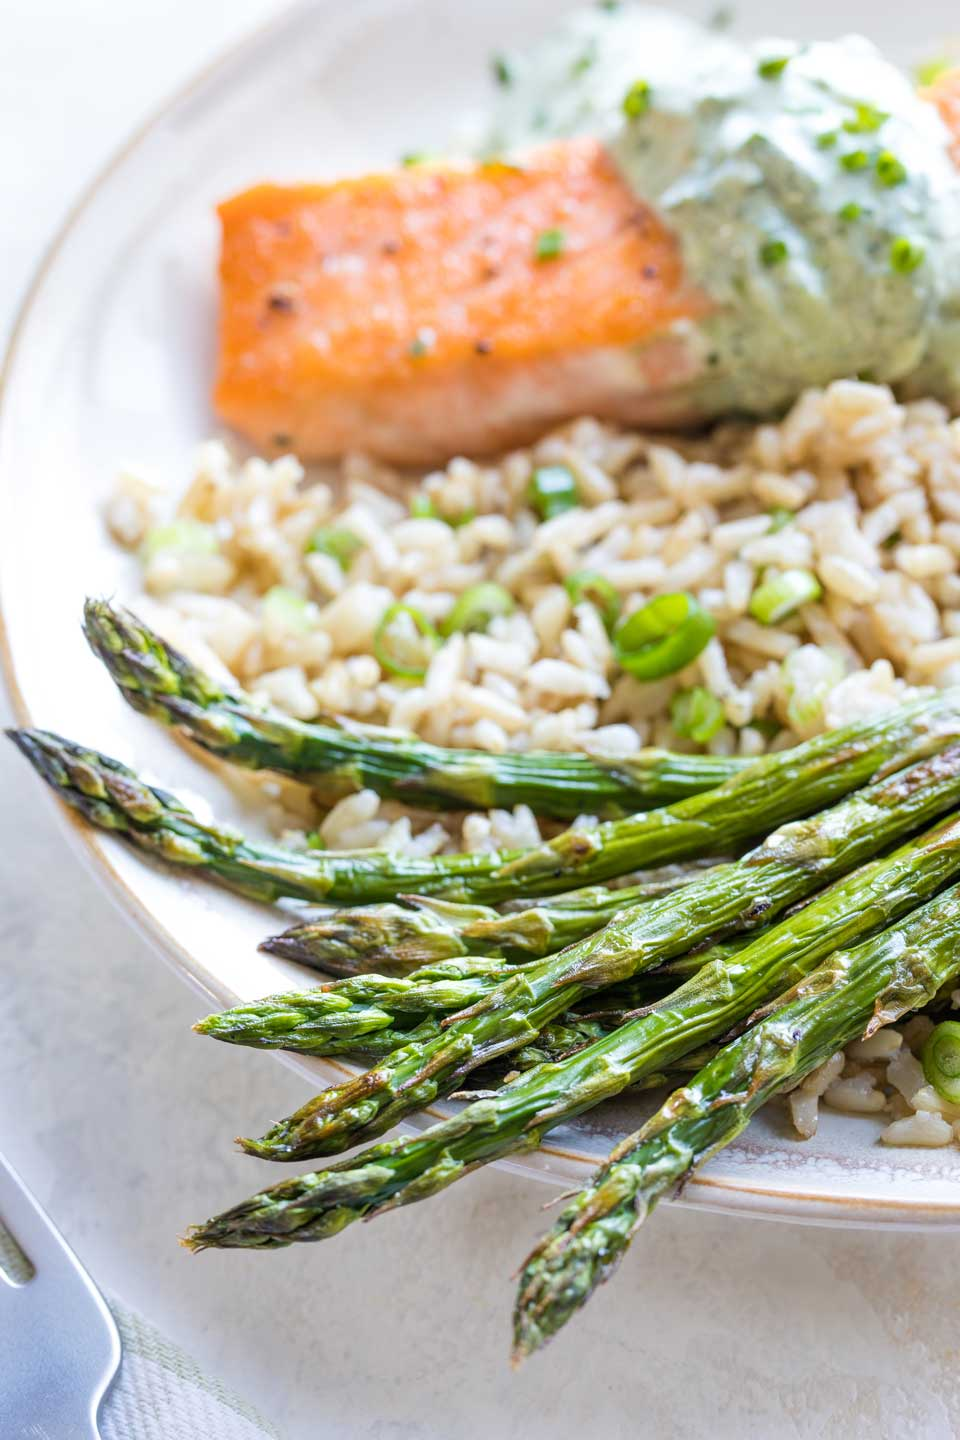 A serving suggestion for this recipe as a side dish, plated on a bed of rice alongside a salmon filet.